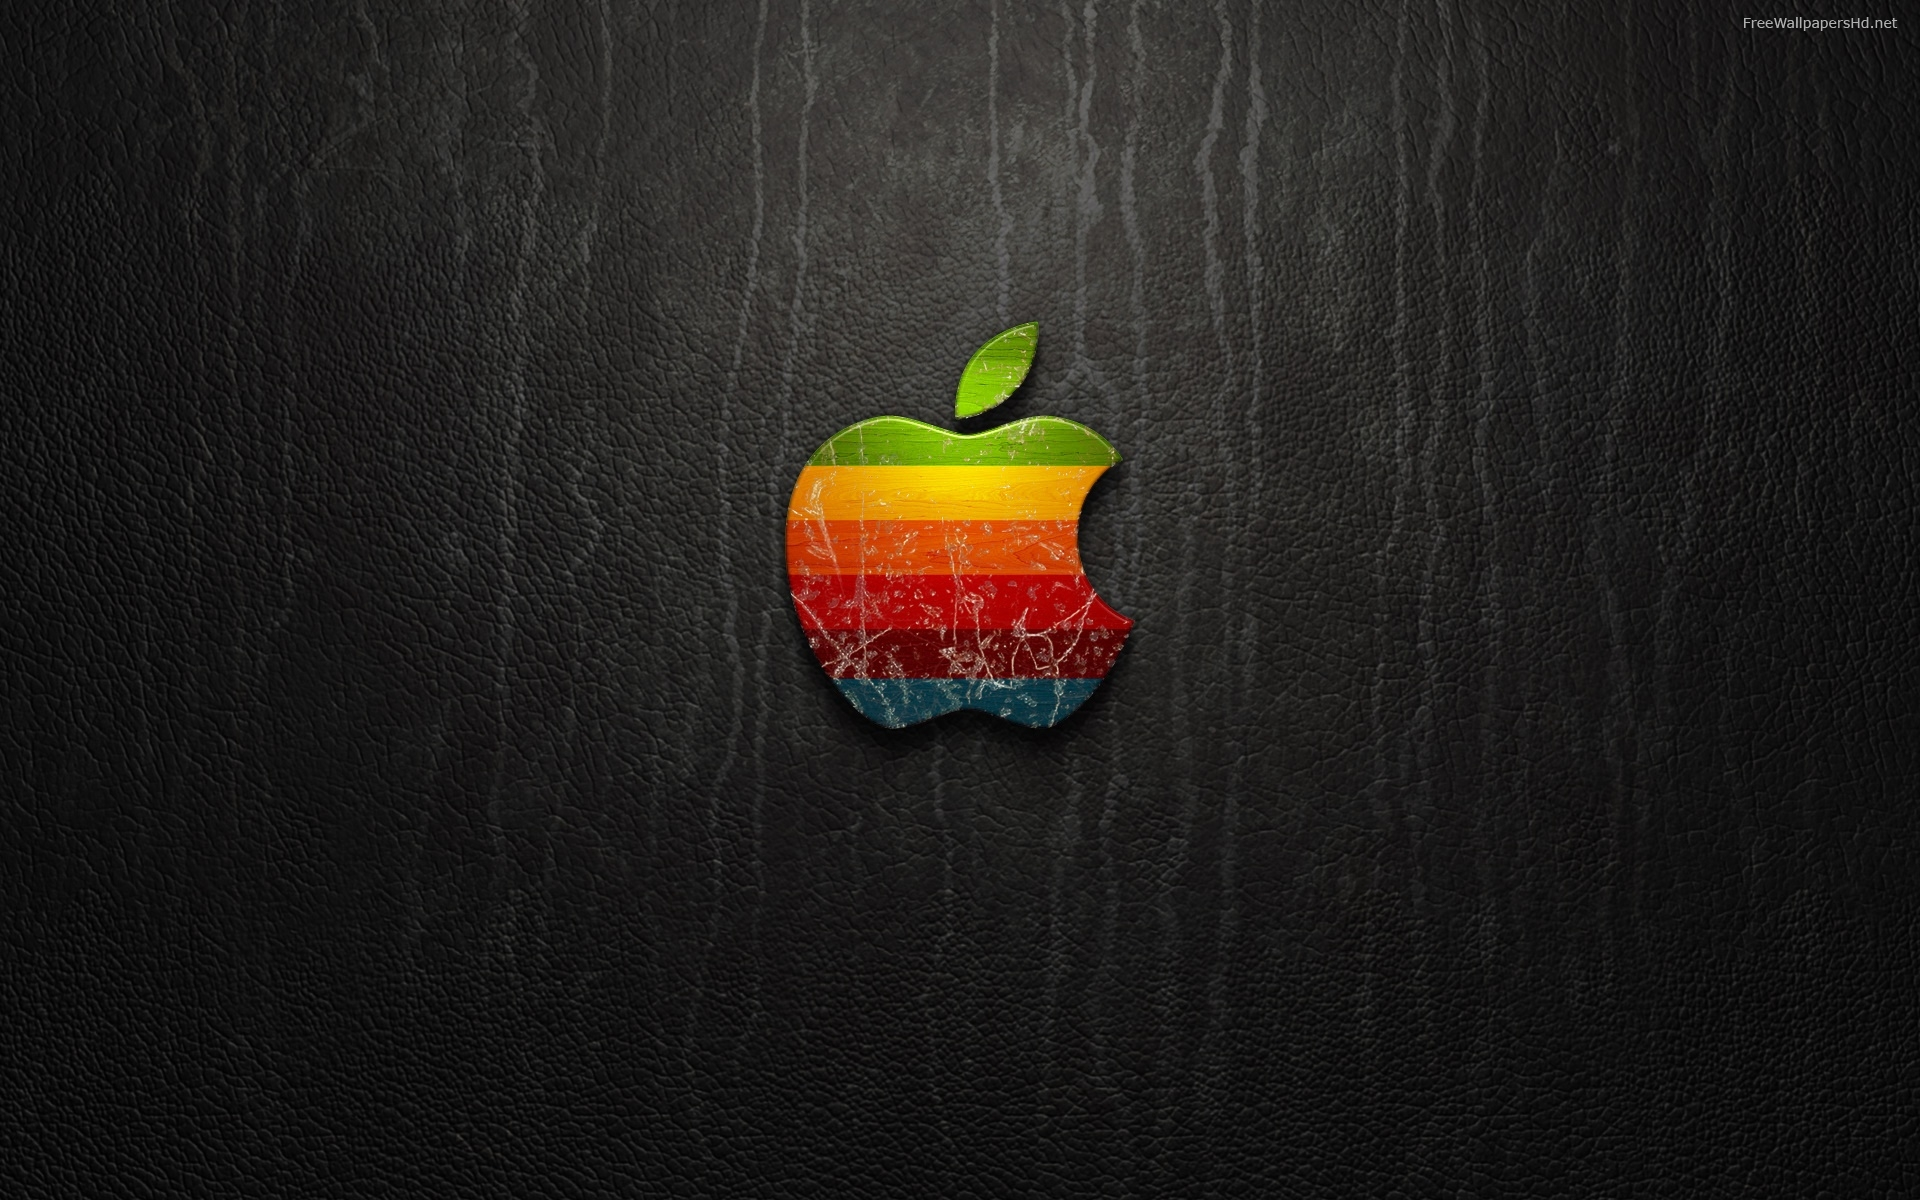 Apple Logo Original Widescreen Hd 1120403 With Resolutions 1920 1920x1200